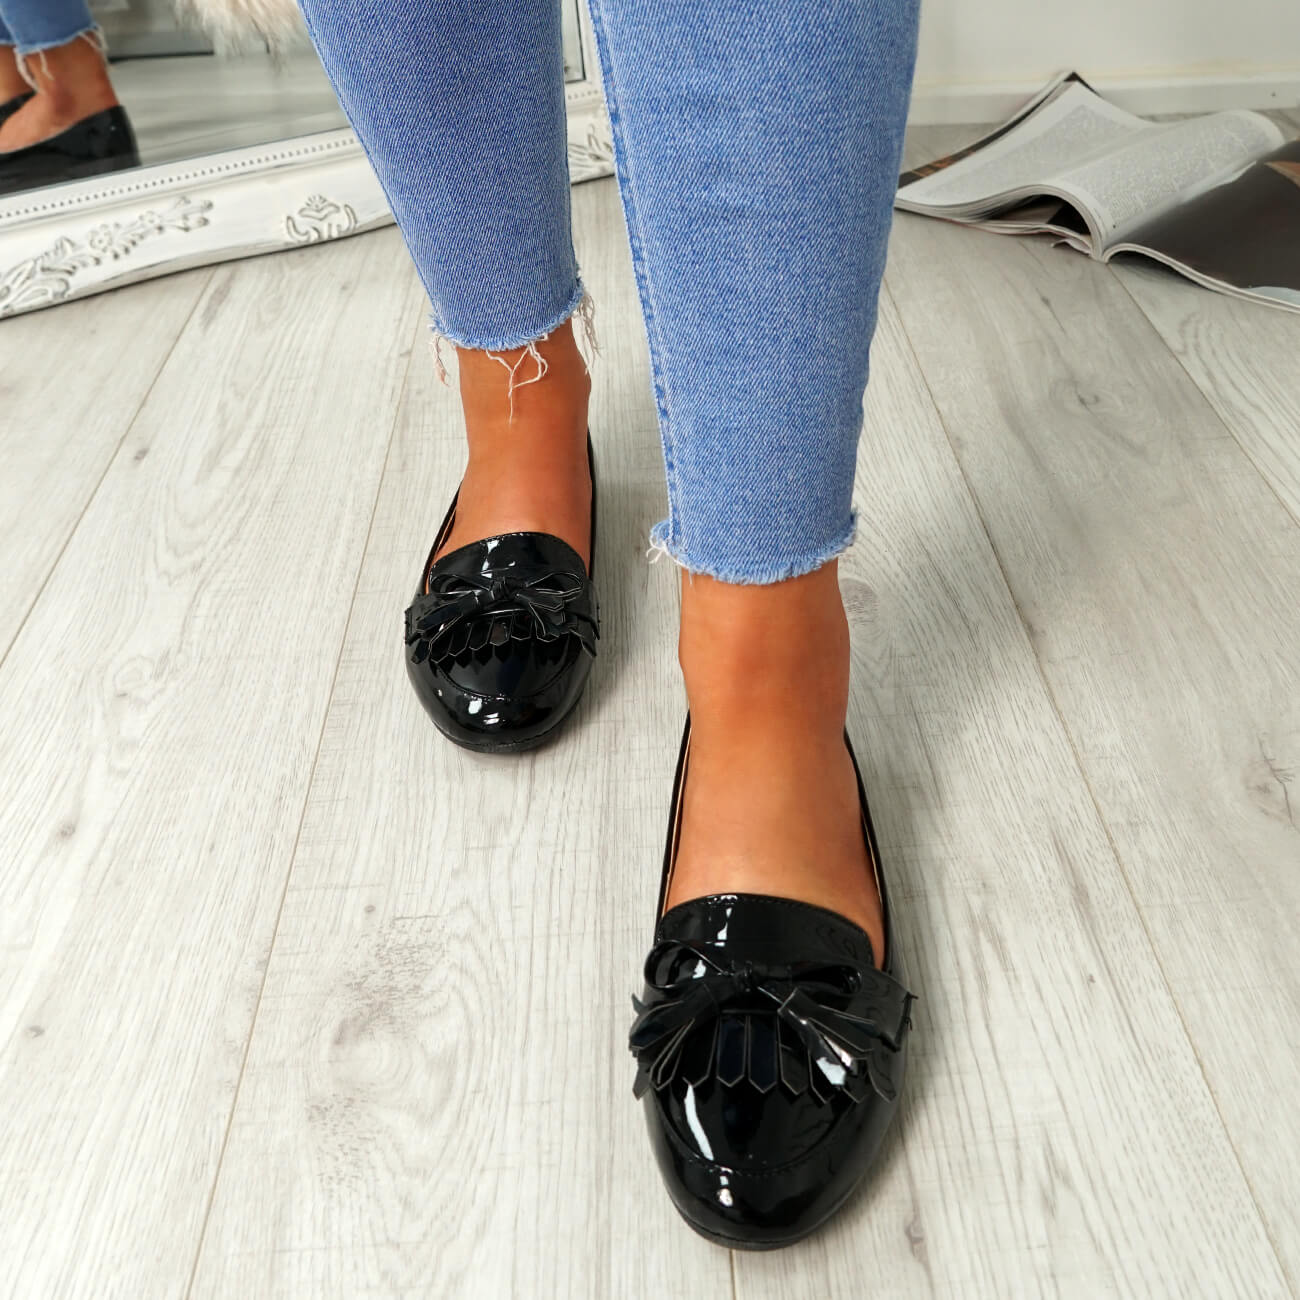 WOMENS-LADIES-FRINGE-BALLERINAS-SLIP-ON-FLAT-DOLLY-PUMPS-CASUAL-SMART-SHOES-SIZE thumbnail 10